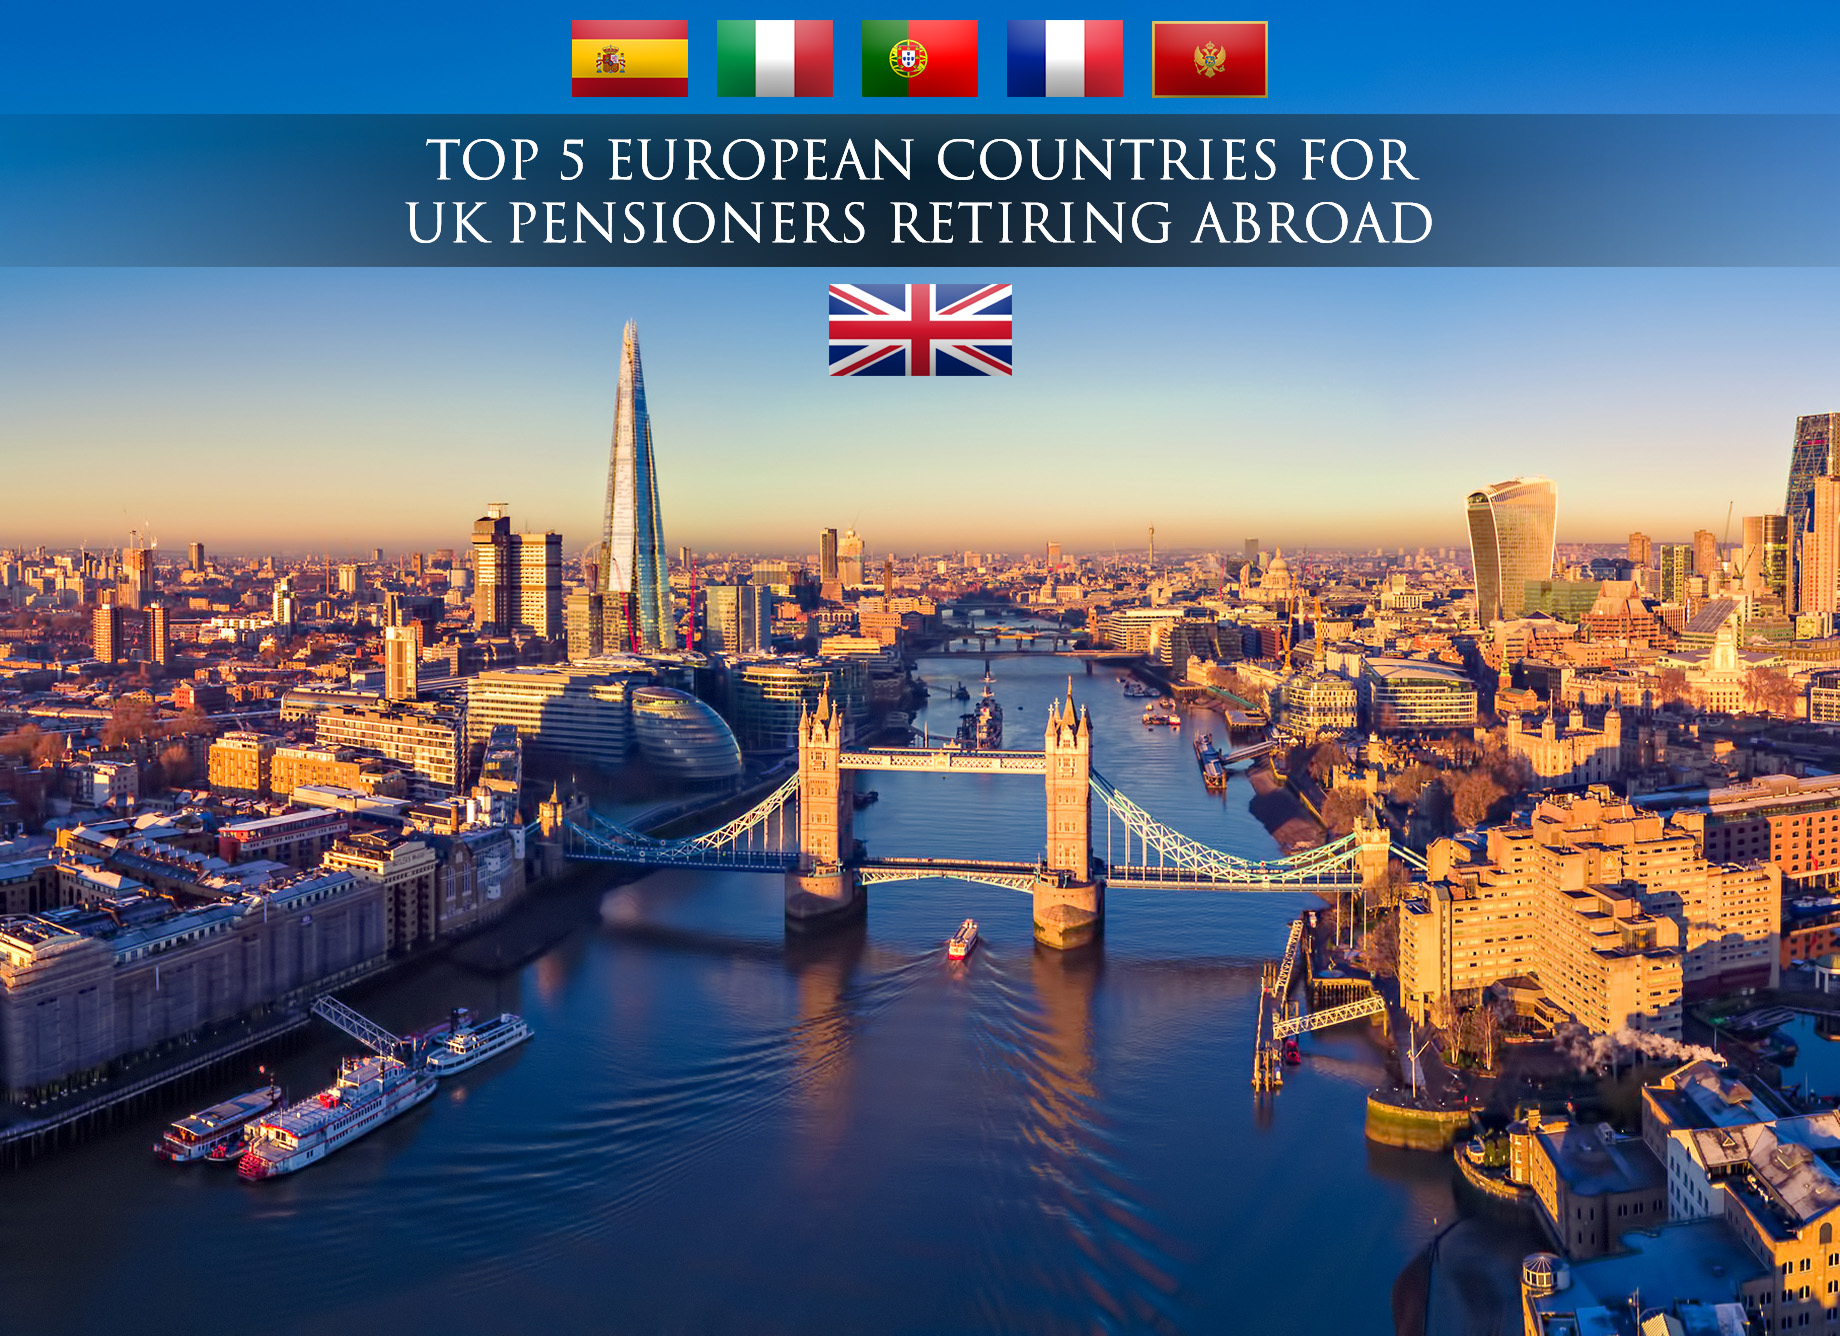 Top 5 European Countries for UK Pensioners Retiring Abroad